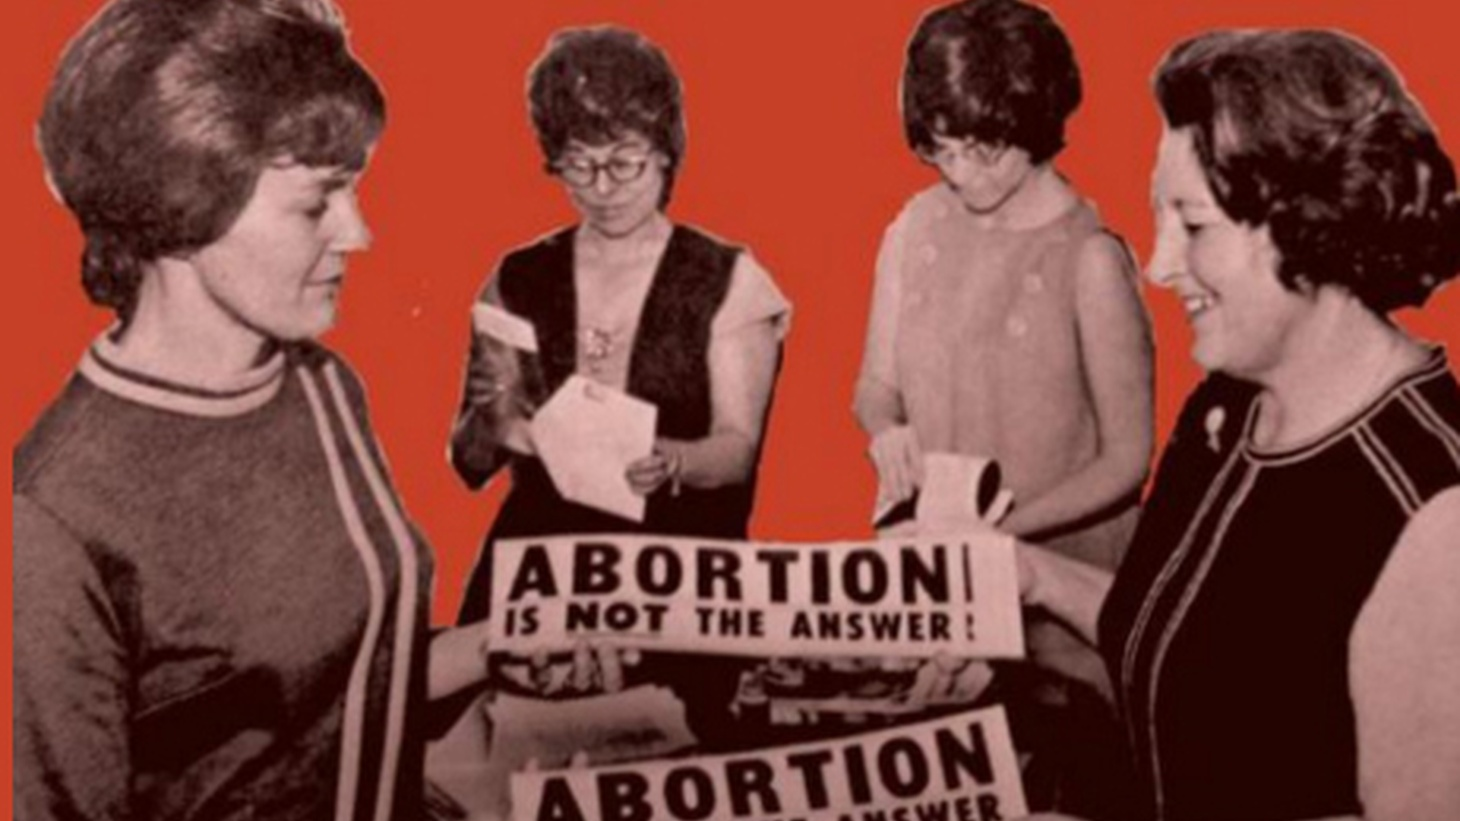 Abortion has come up again and again on the campaign trail, and the rhetoric is (no surprise) split along partisan lines. Republicans want to overturn Roe v. Wade, the 1973 Supreme Court decision that legalized abortion. Democrats largely favor abortion rights. But it wasn't always that way. Before Roe v.